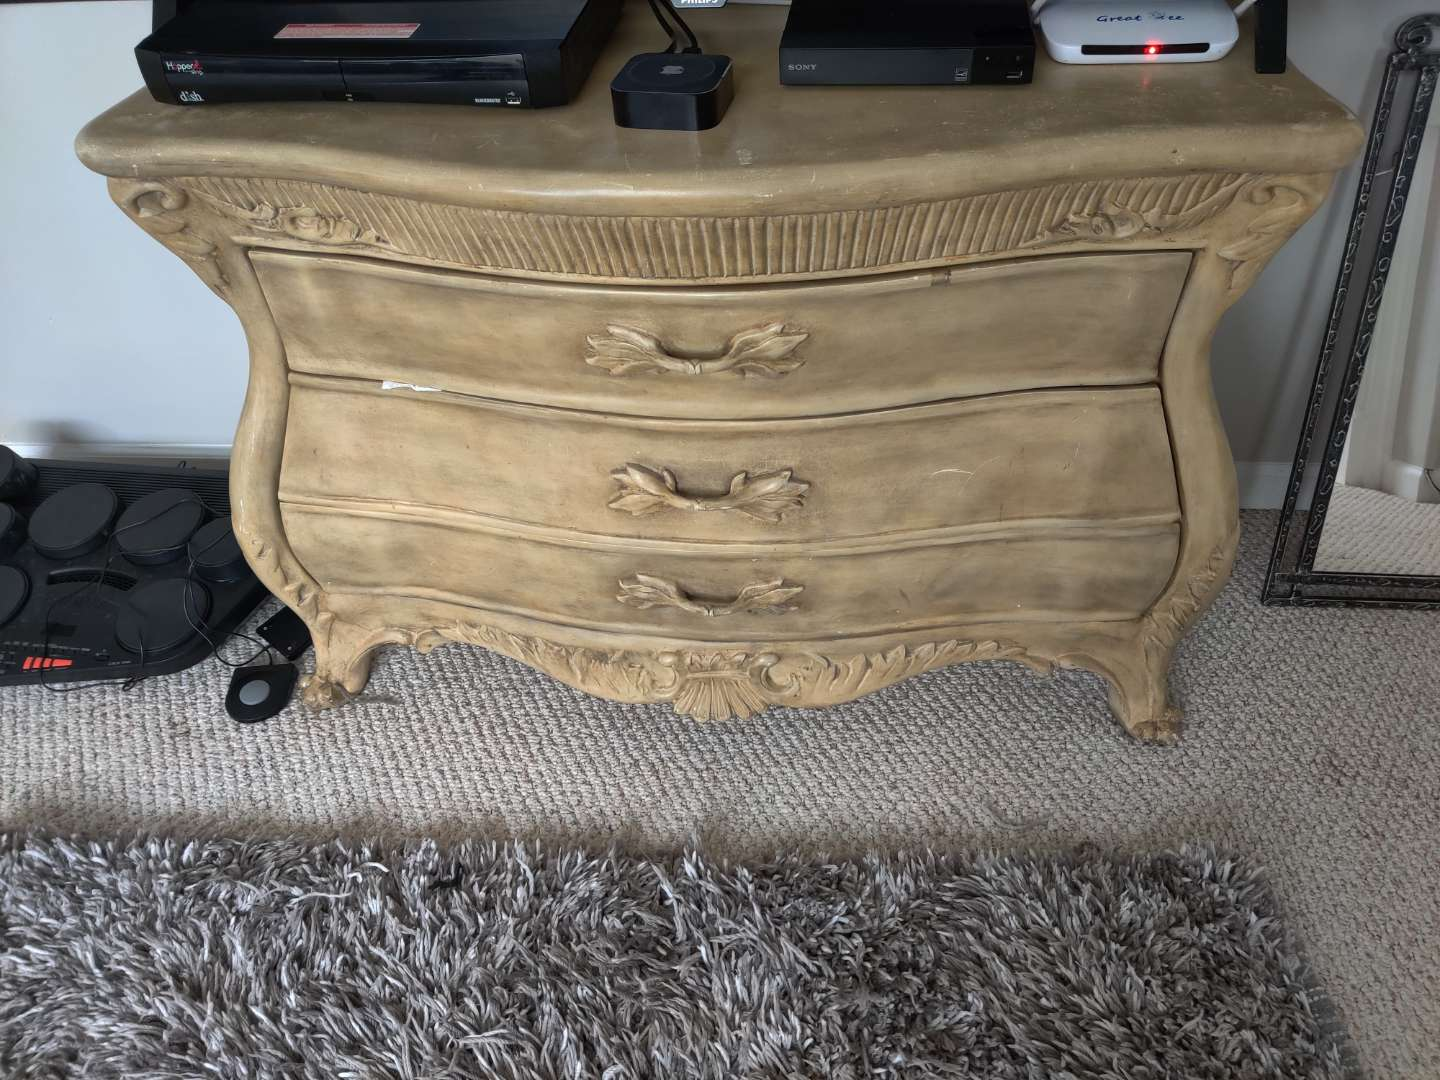 55 Bombay style chest 45 in wide three drawers very nice